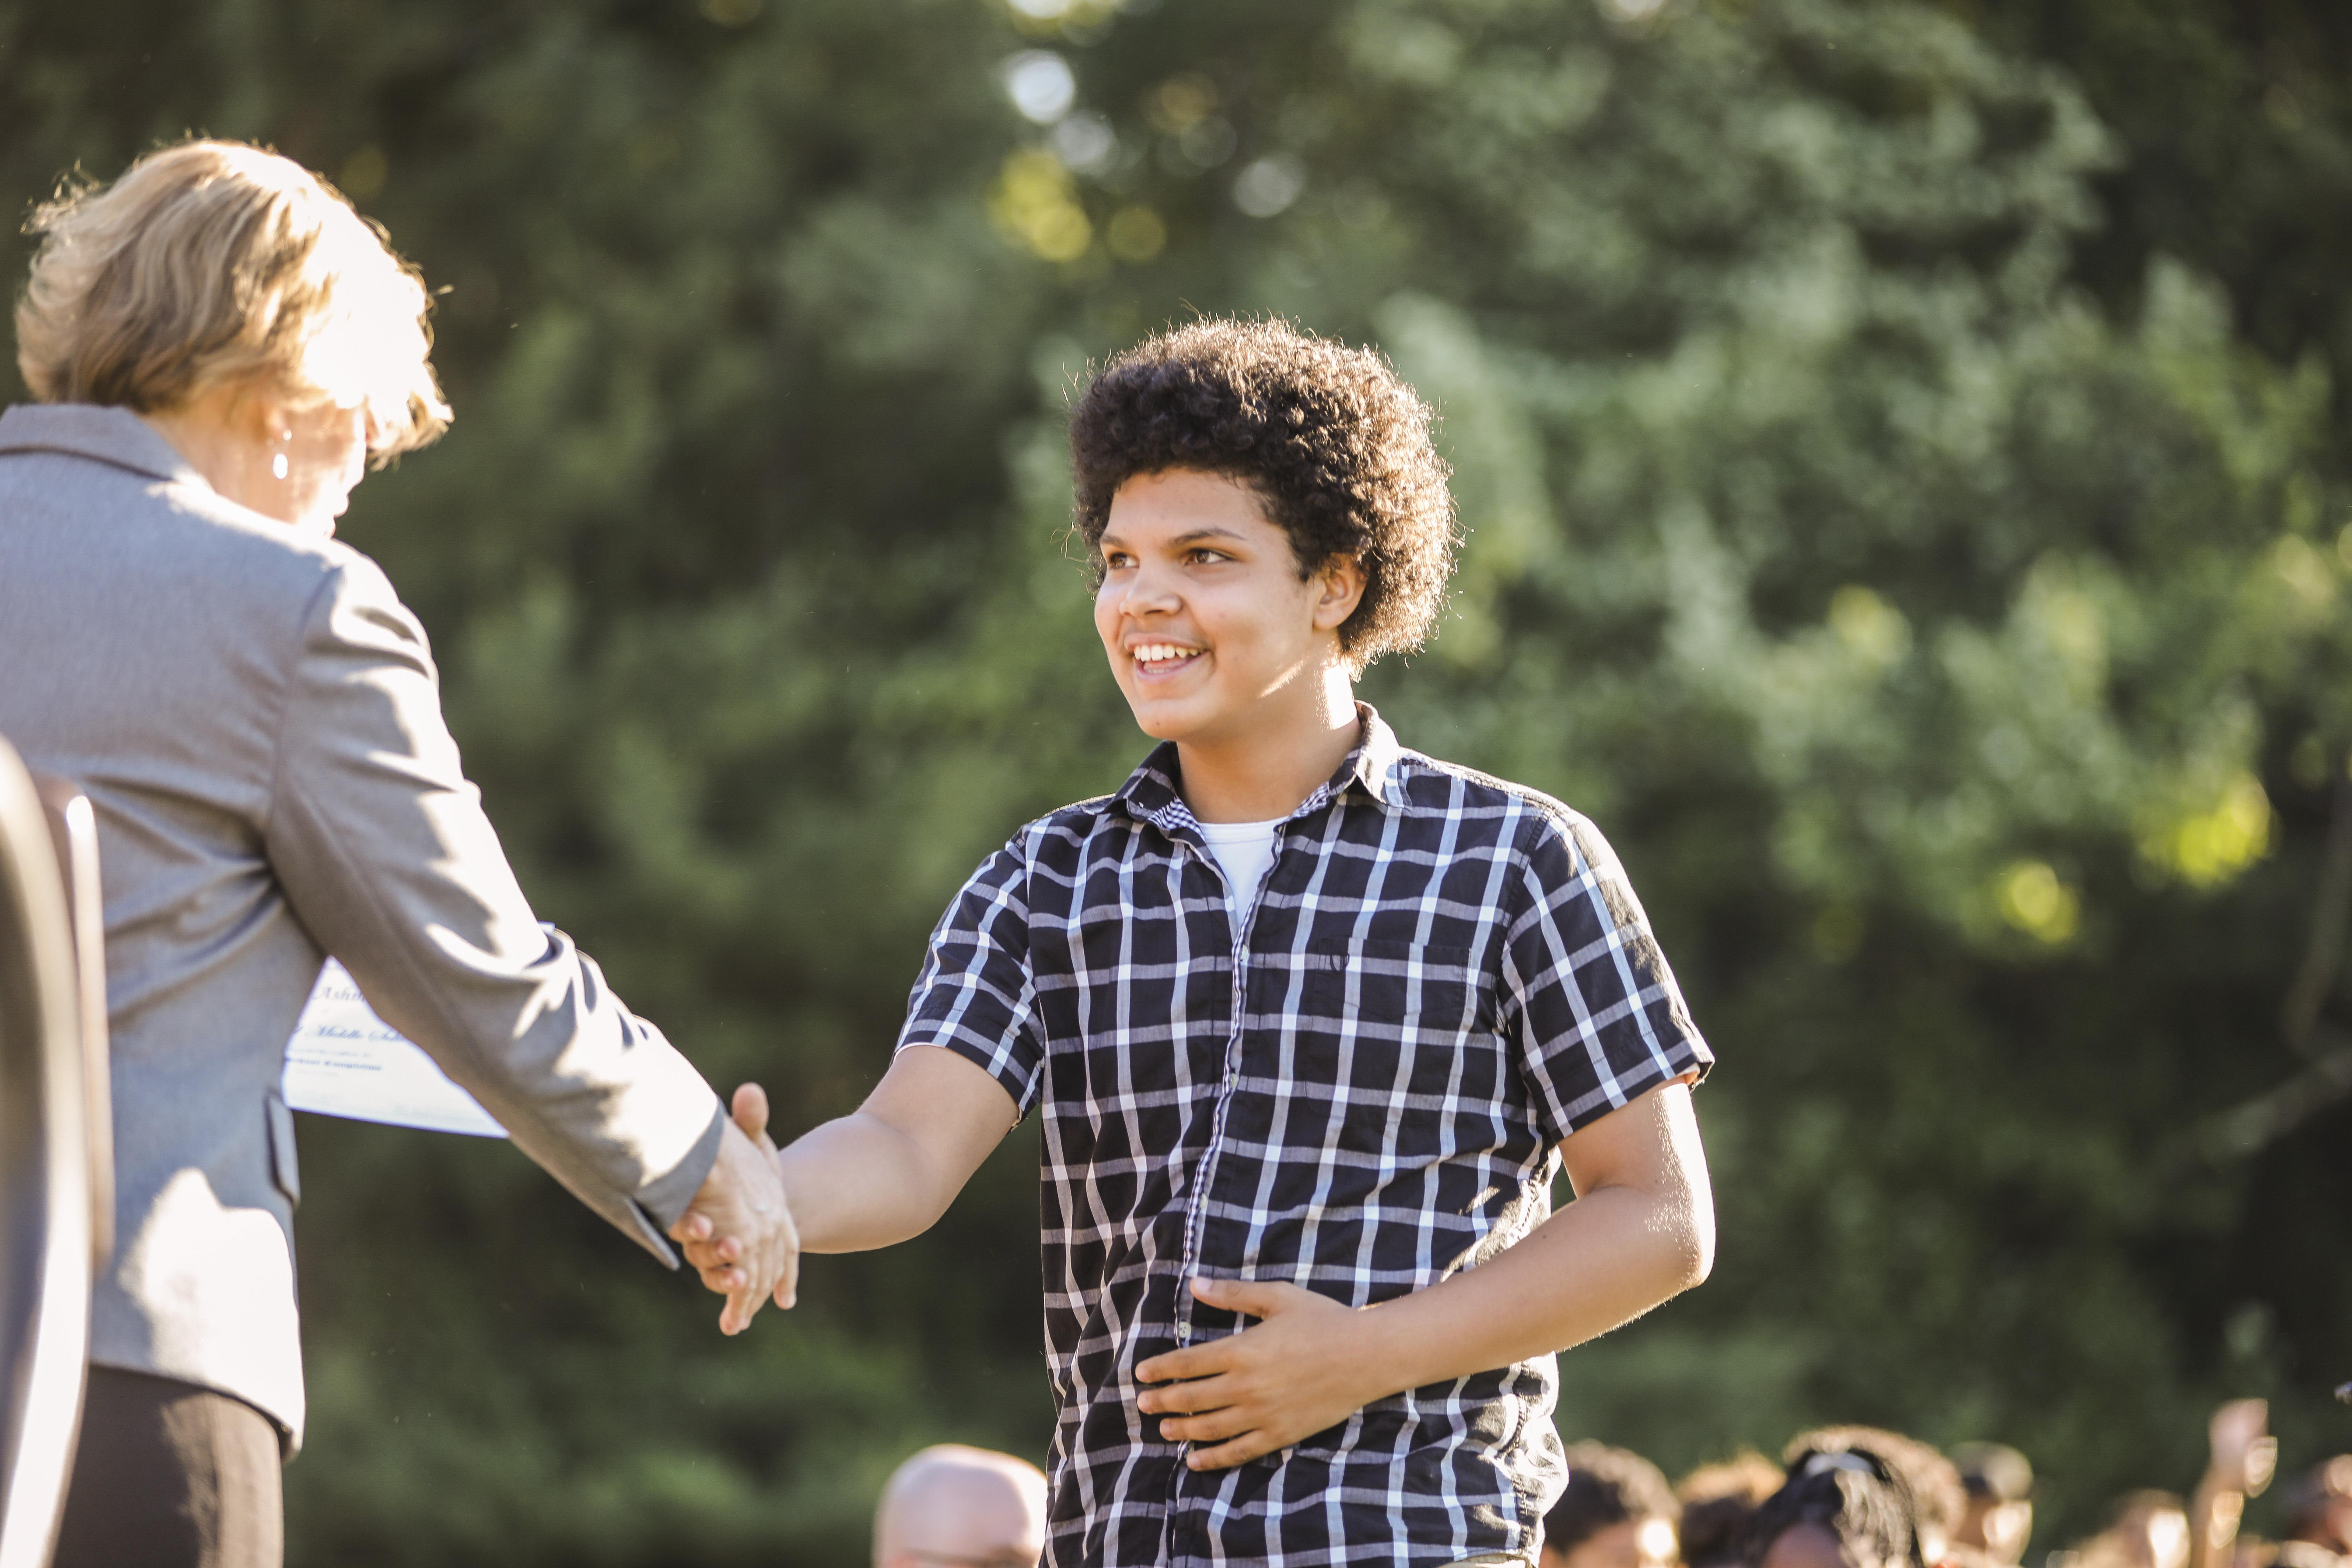 CHMS student shaking superintendent's hand at stepping forth ceremony